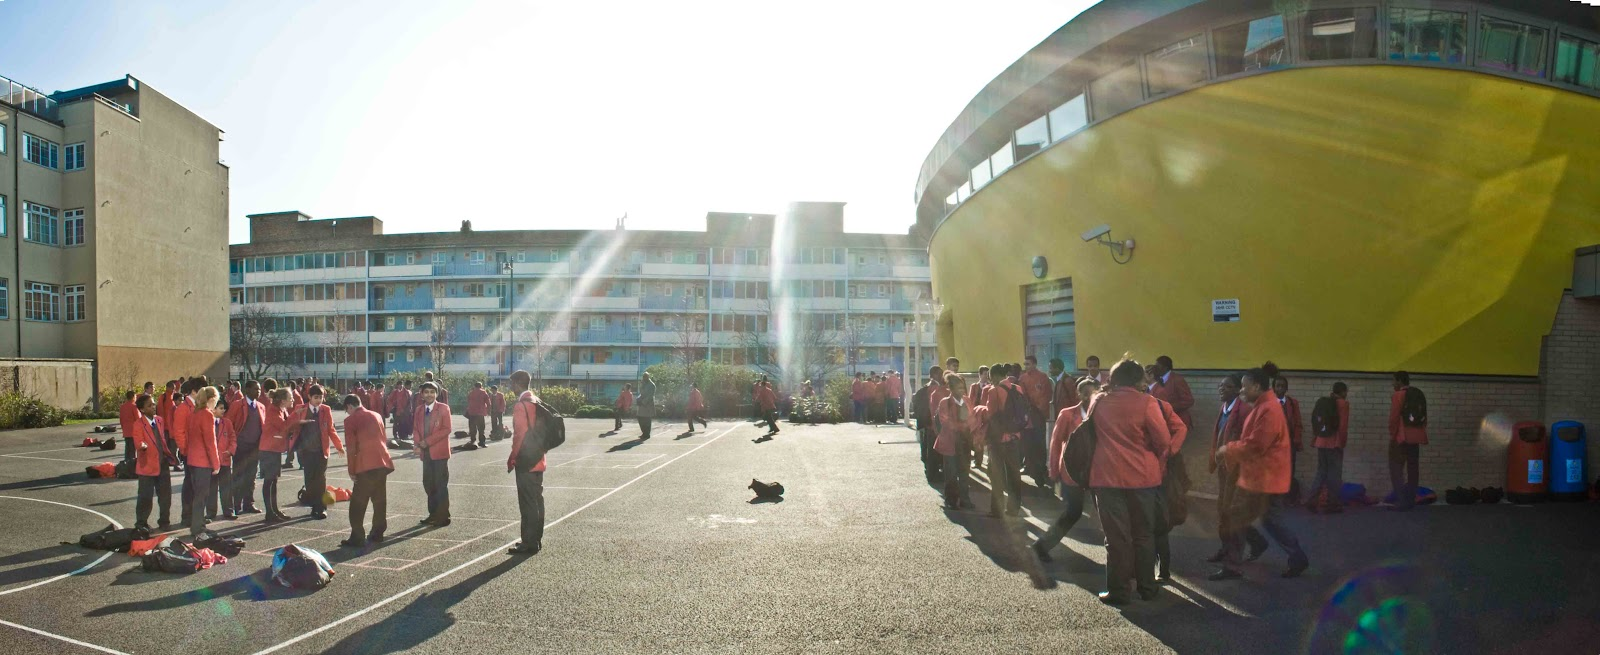 City academy hackney project production stills yohan forbes